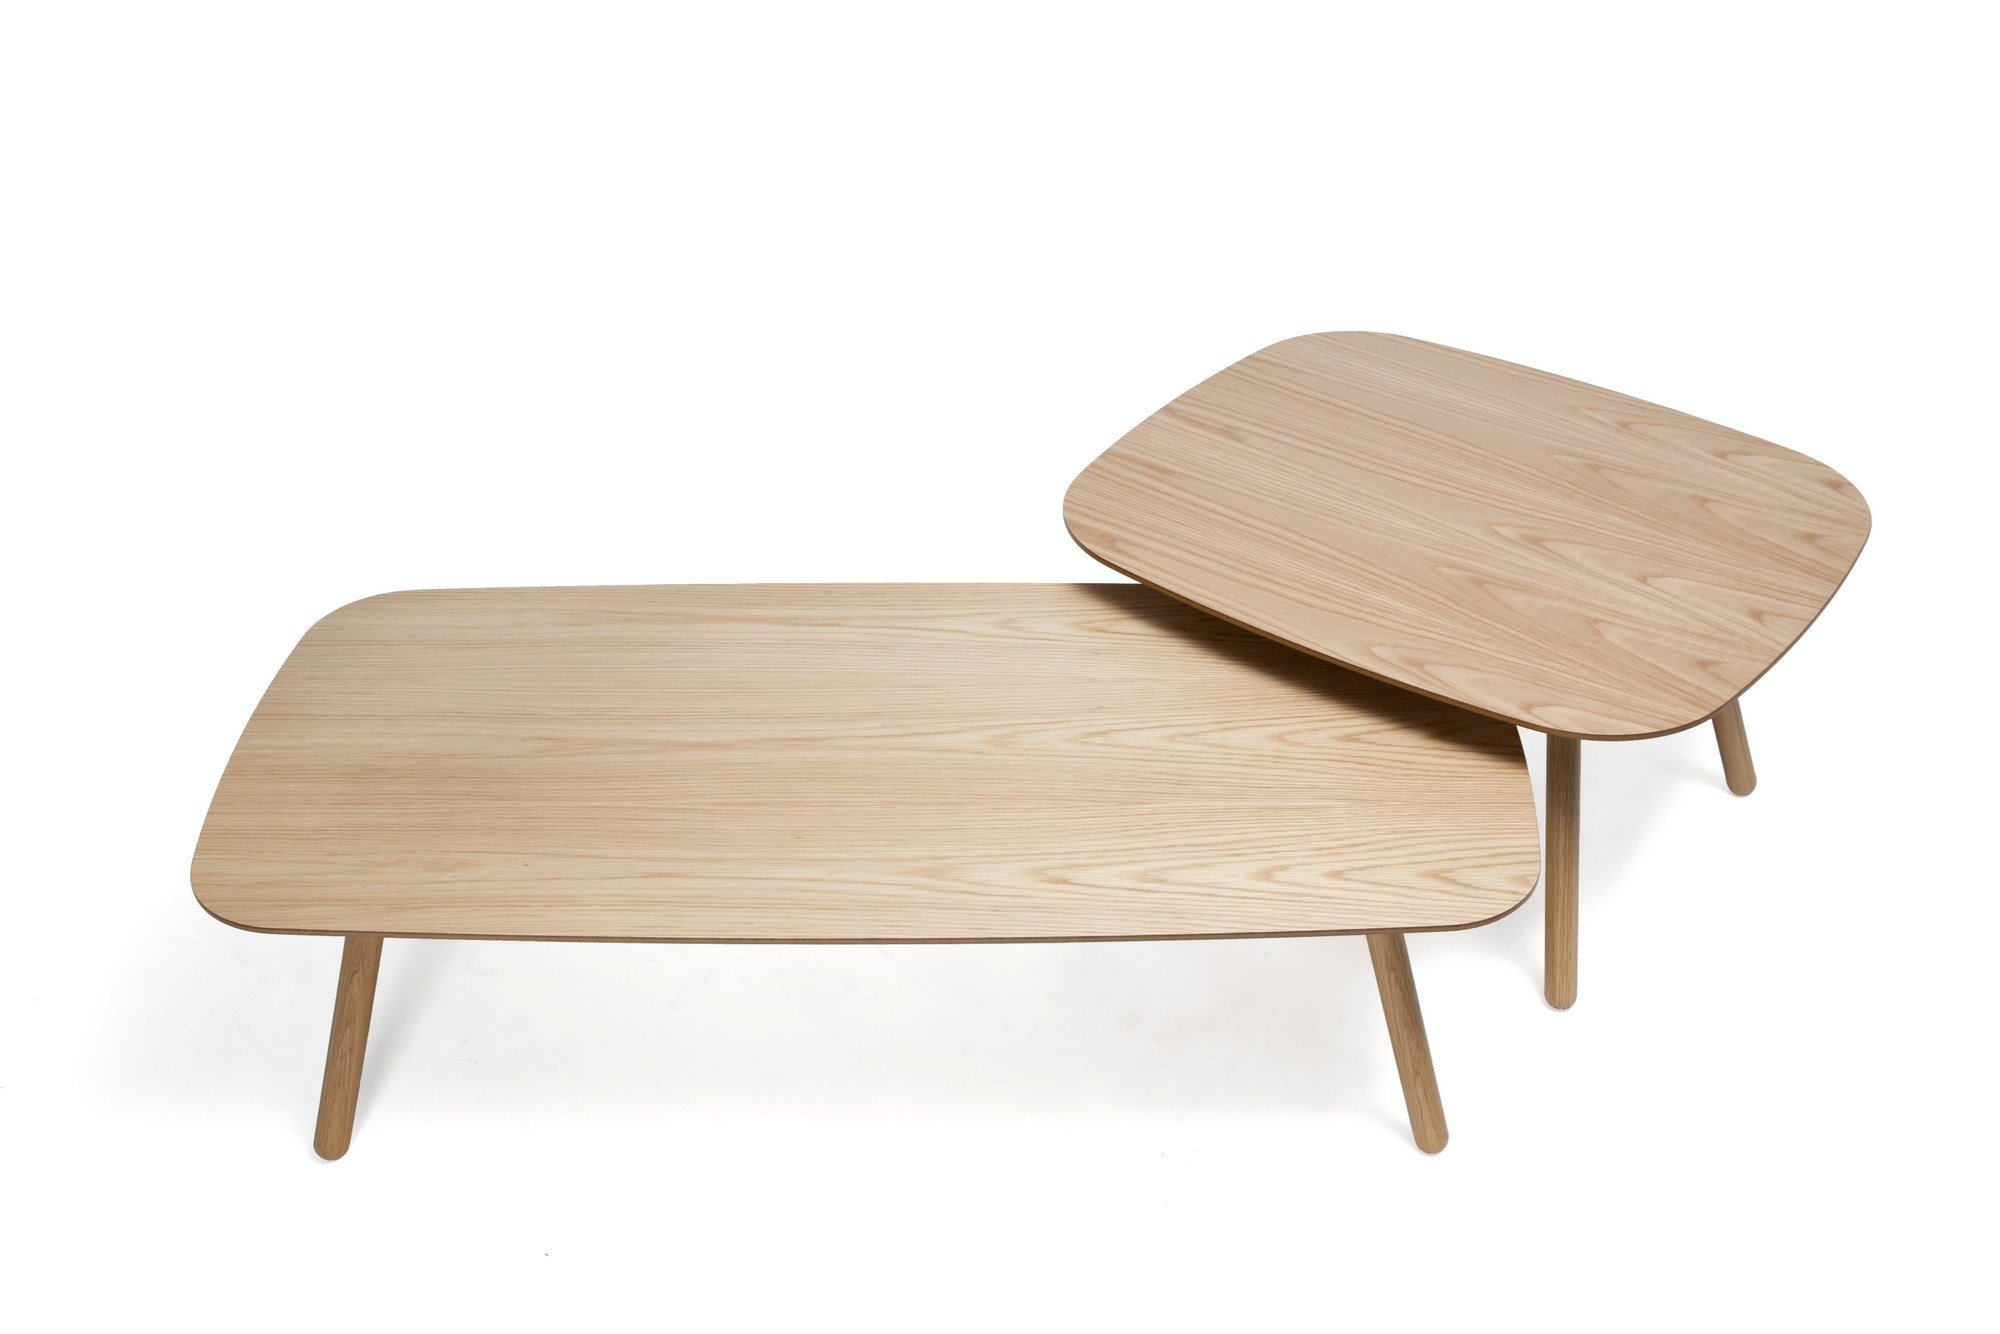 Bondo Mdf Coffee Table Bondo Collection By Inno Interior Oy Design Harri Korhonen